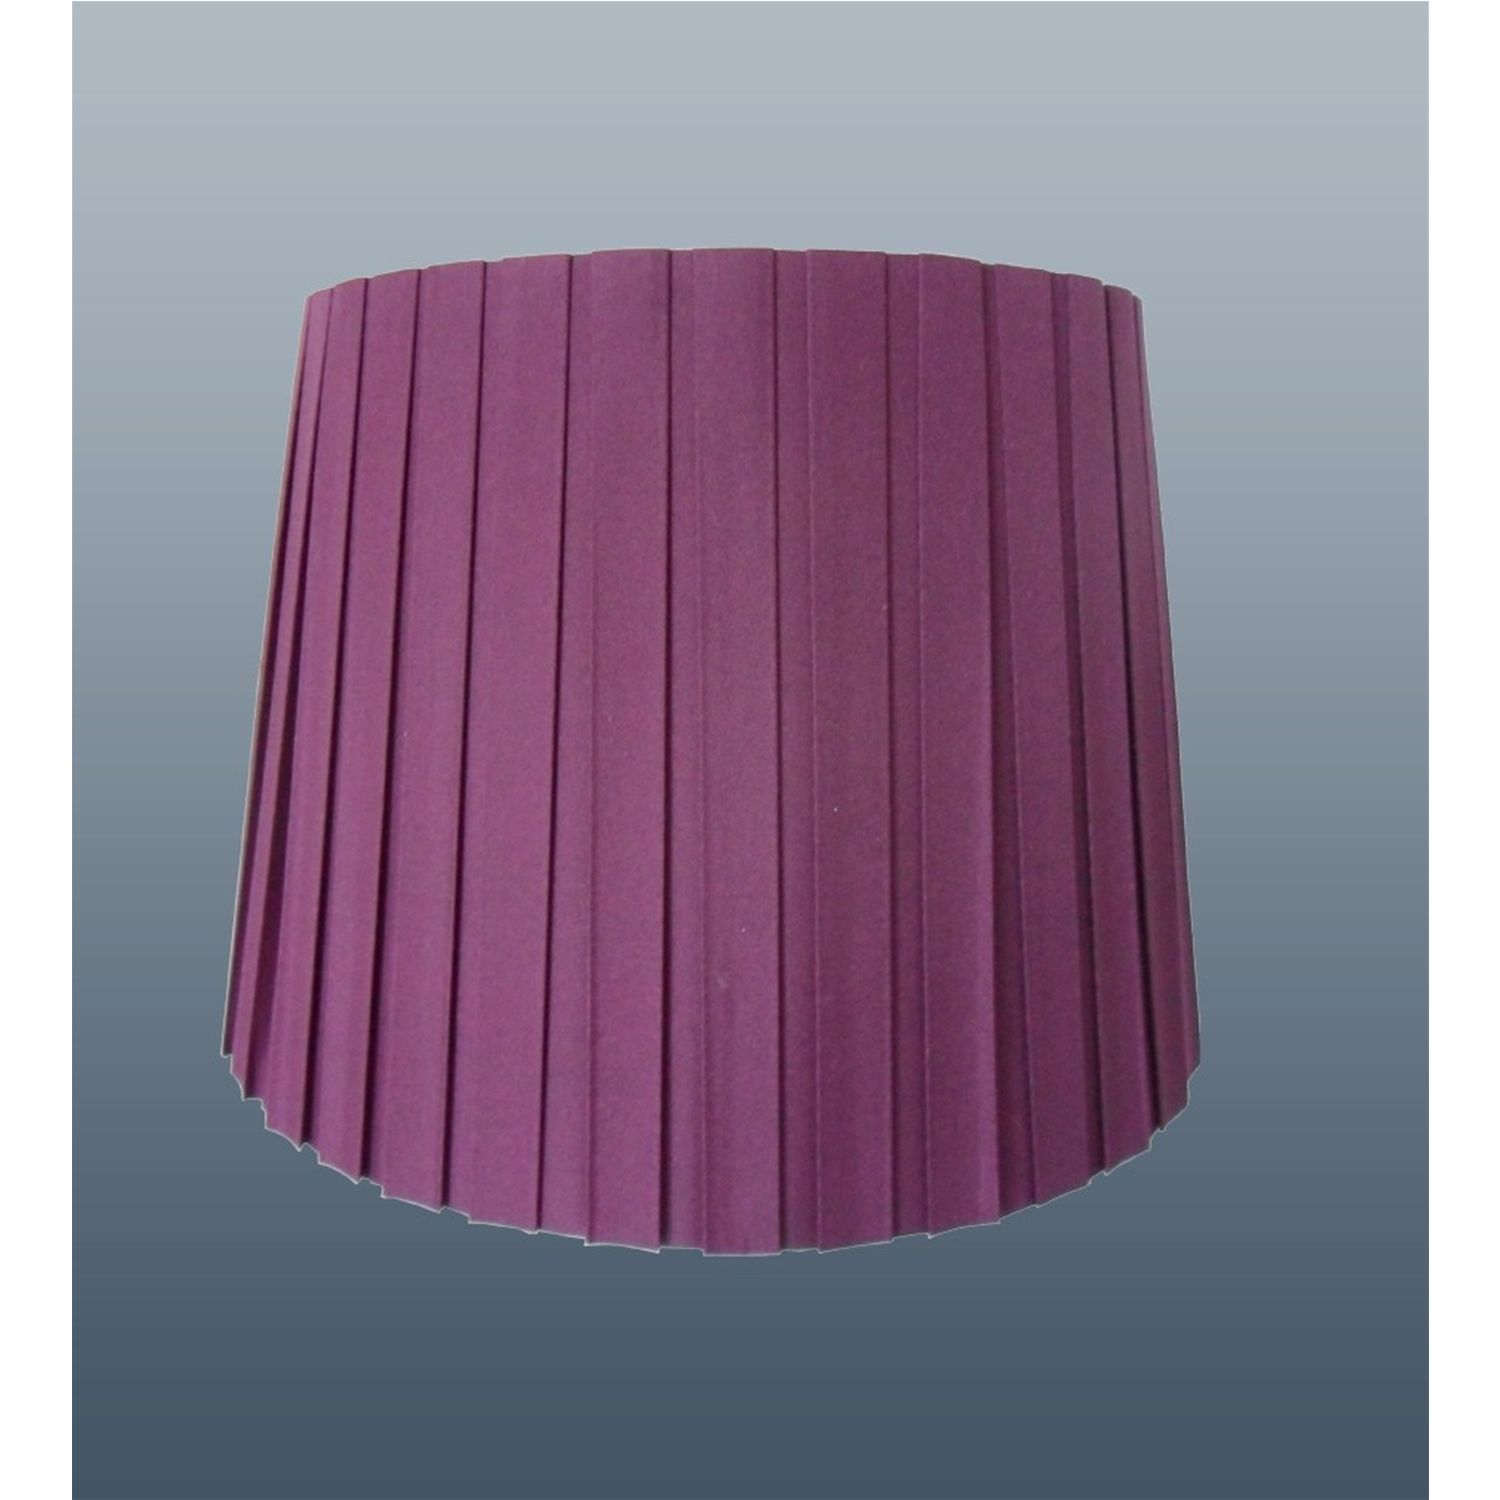 "11"" Box Pleat Lilac Shade"